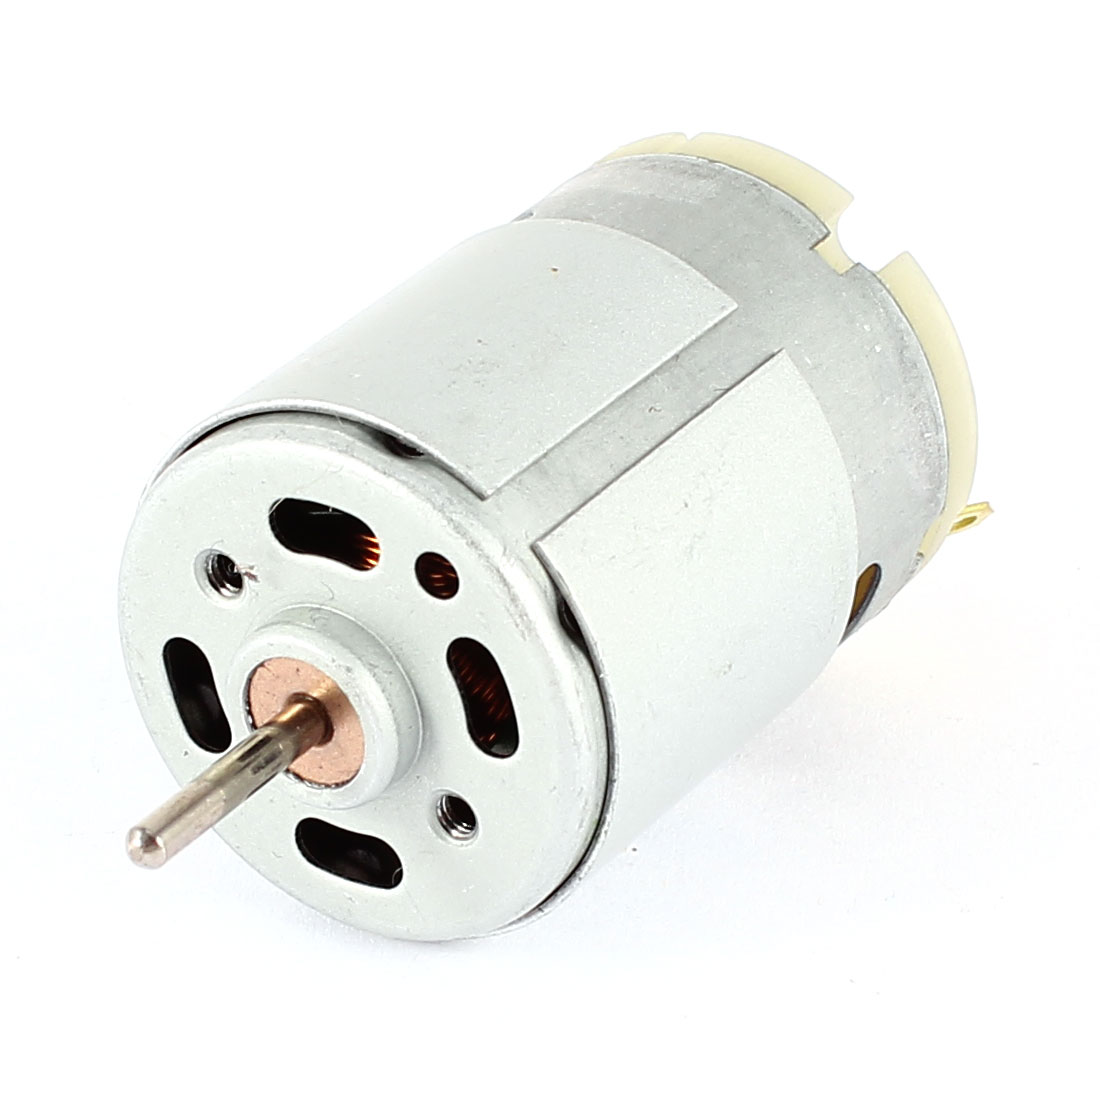 RS380 DC 1.5-18V 30000RPM Electric Mini Motor 38x28mm for RC Boat Model Toys DIY